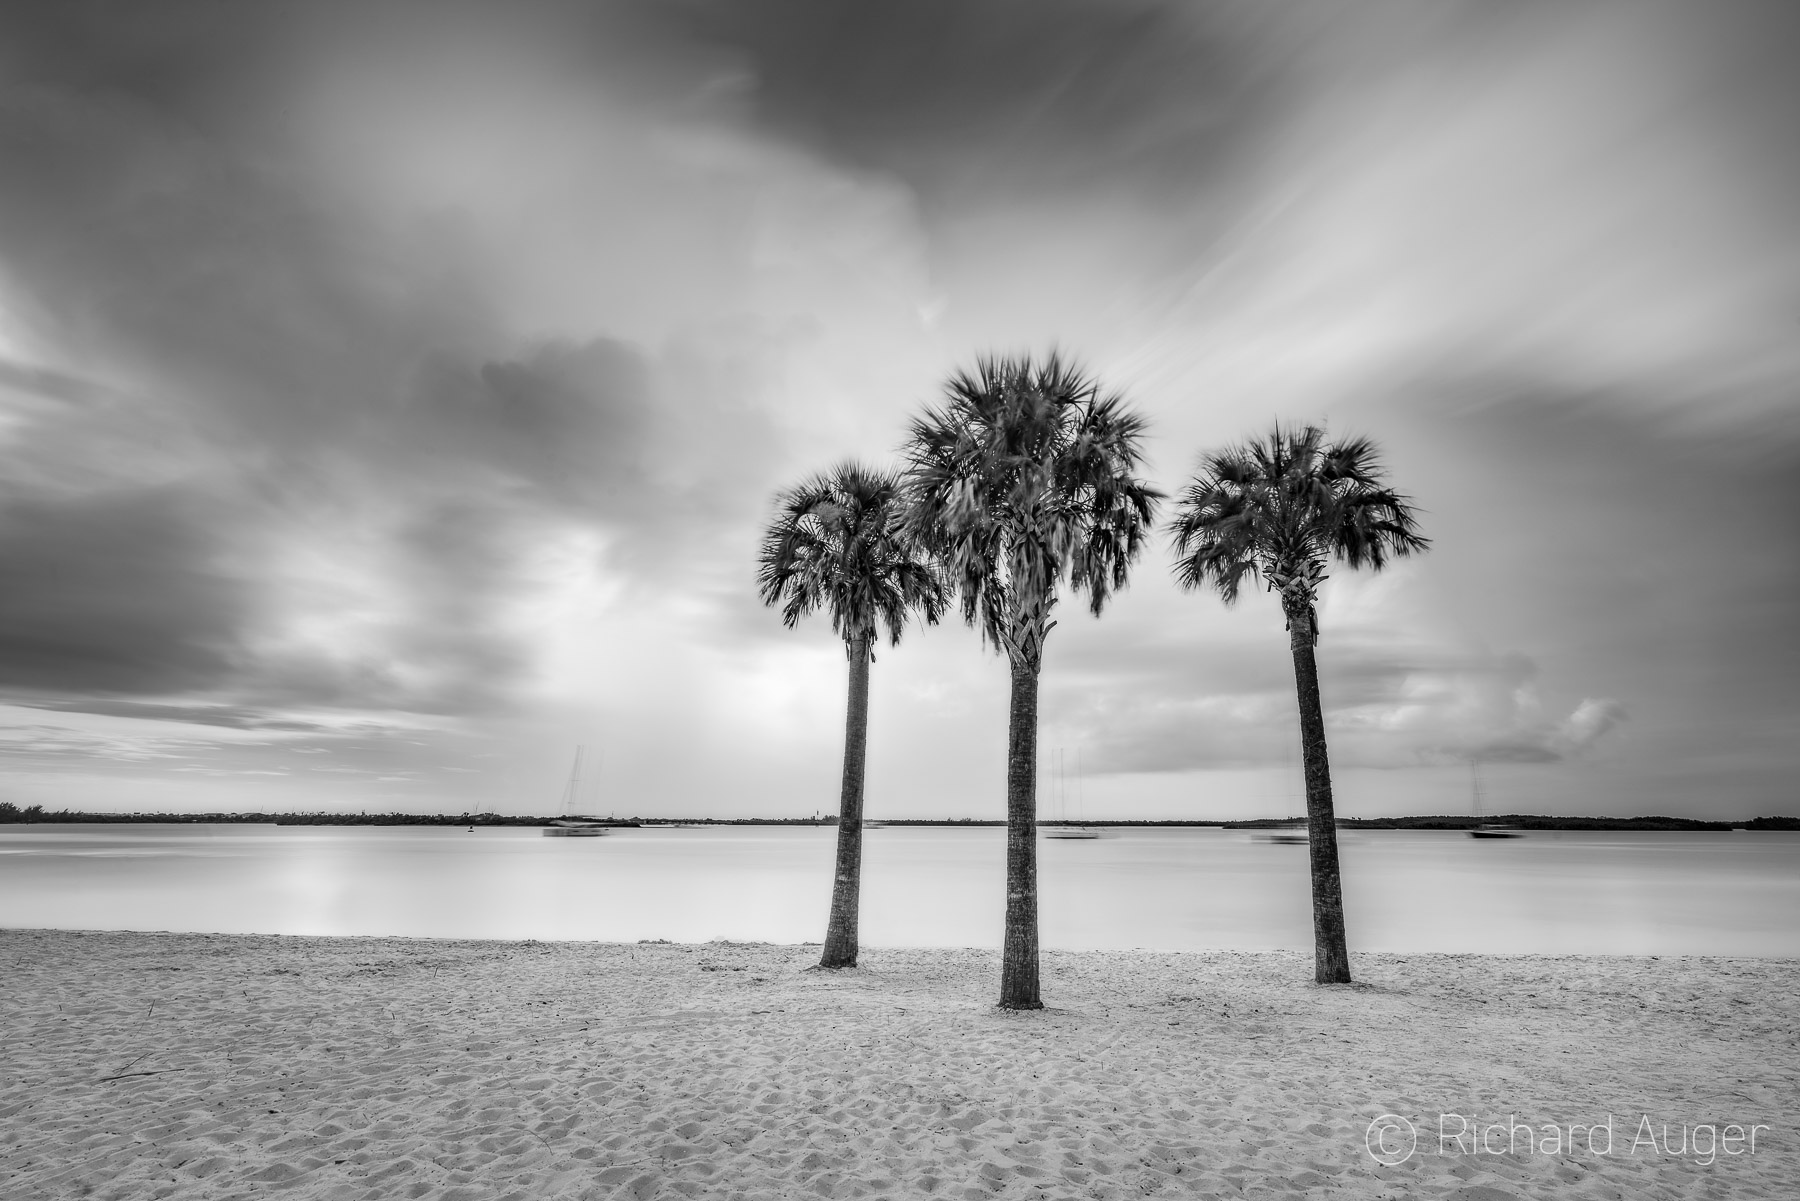 Ft Beach, Fort Pierce Florida, Photograph, Long Exposure, Black and White